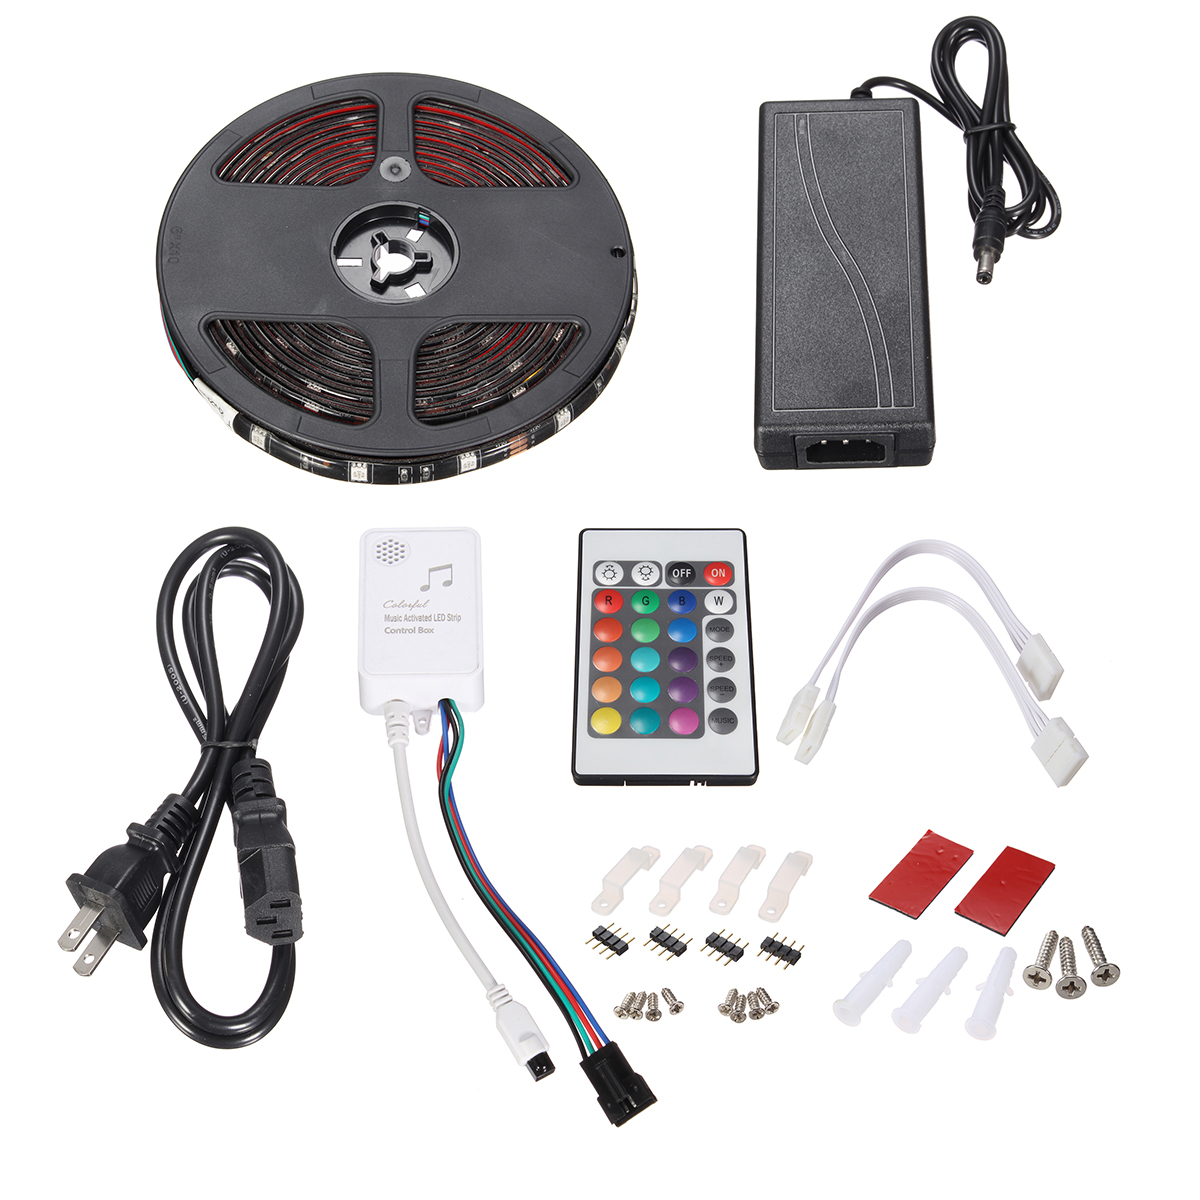 5M SMD5050 150LEDs Waterproof RGB Strip Light+5A Power Supply with 24keys Remote Control DC12V